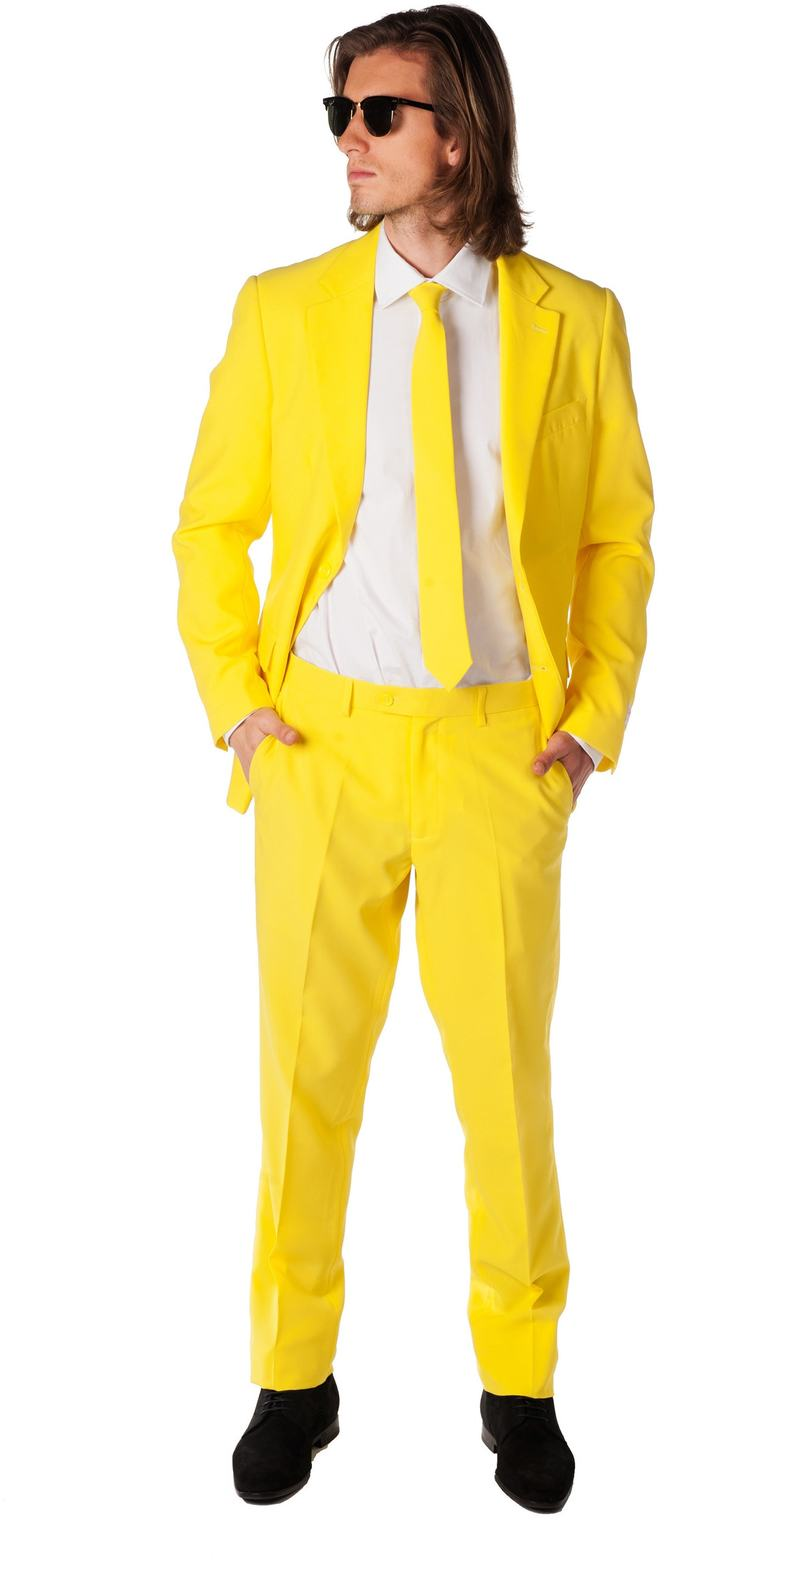 OppoSuits Yellow Fellow Suit photo 0